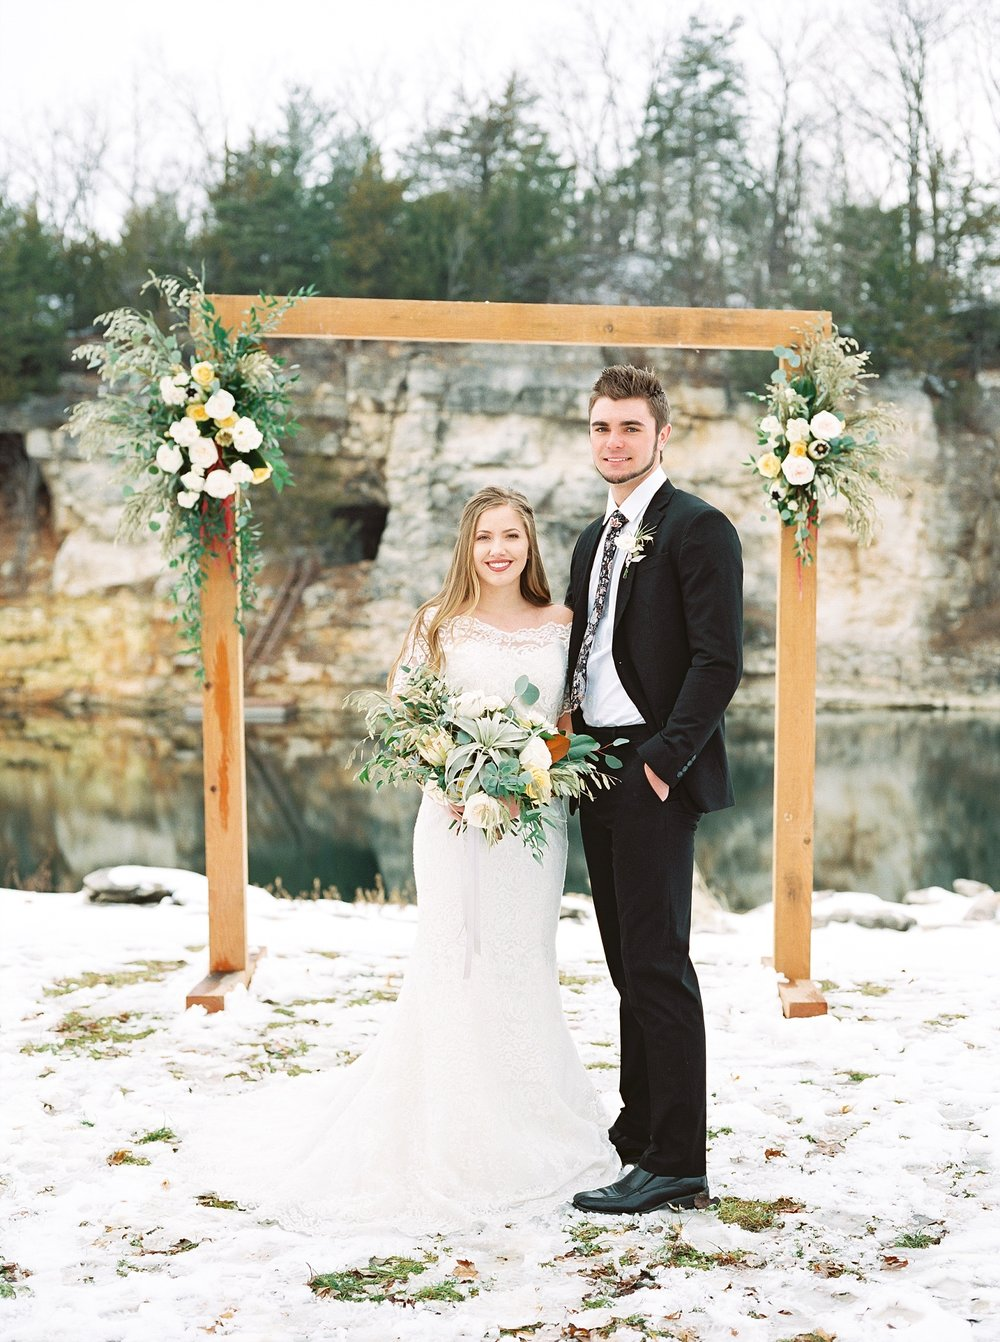 Snowy Winter Wedding at Wildcliff Events Lake With Earthy Jewel Tones and Organic Refined Style by Kelsi Kliethermes Photography Kansas City Missouri Wedding Photographer_0109.jpg